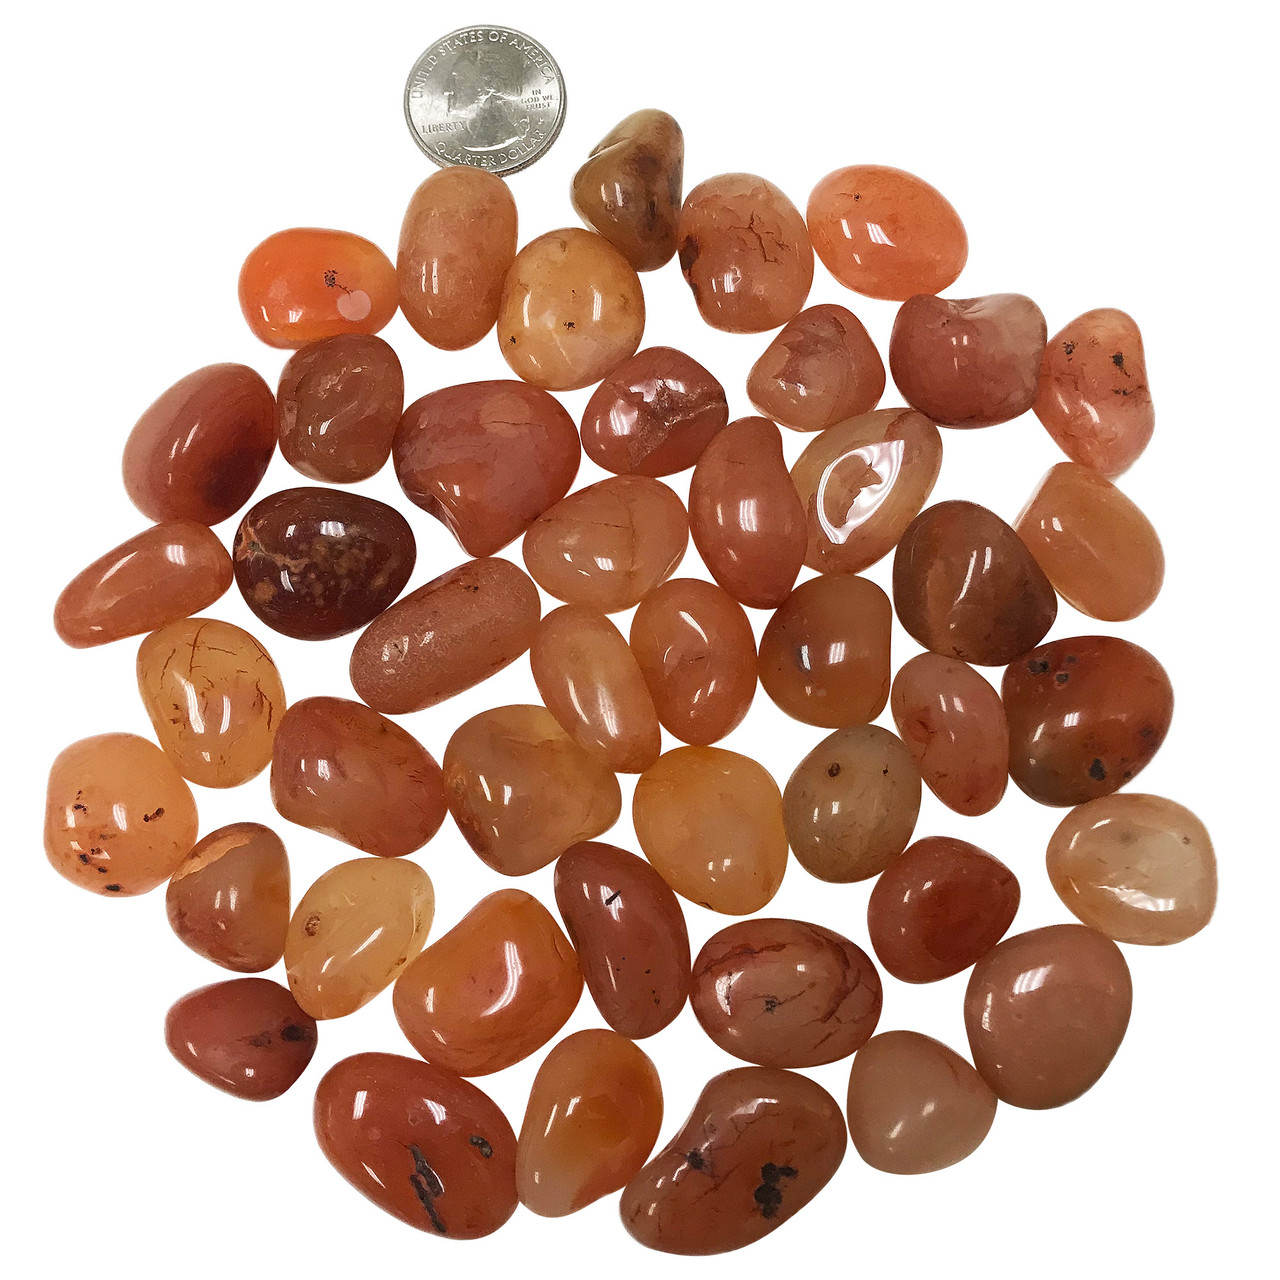 Carnelian Tumbled Gemstones